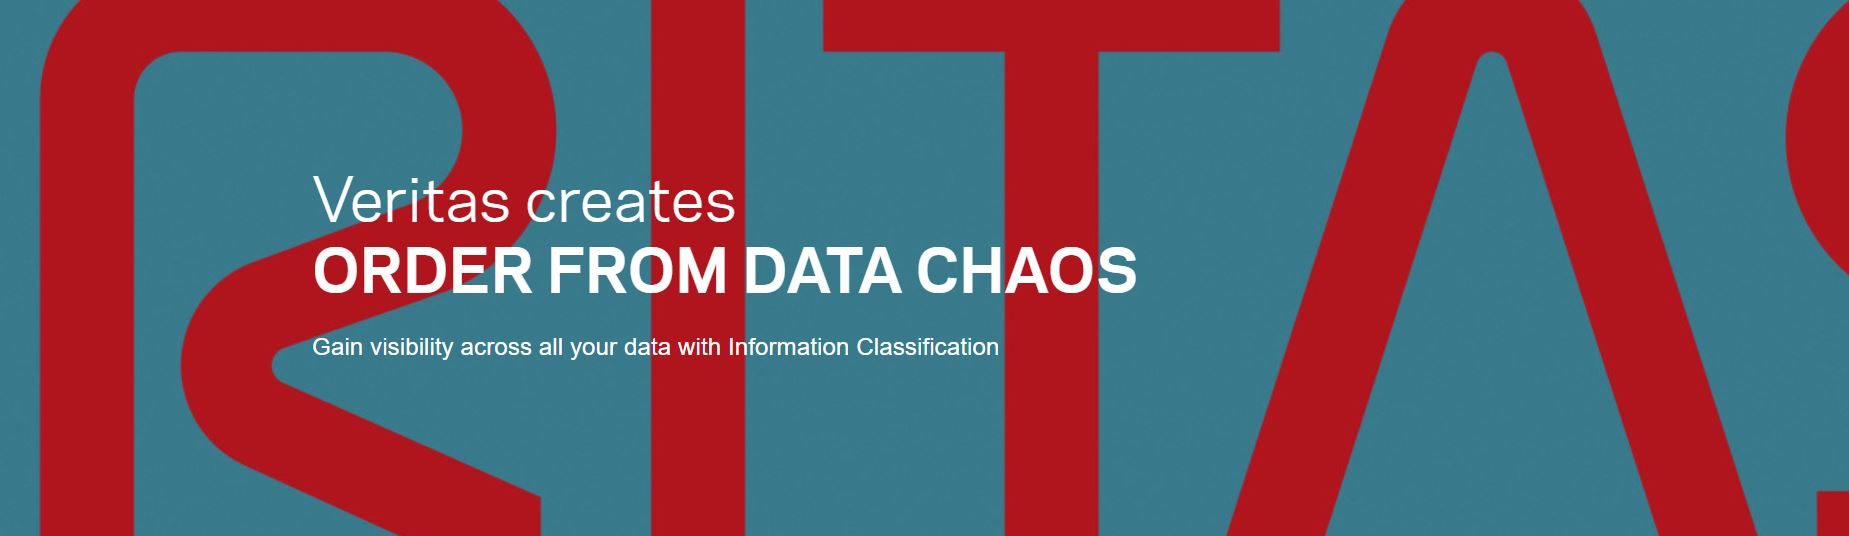 ORDER FROM DATA CHAOS